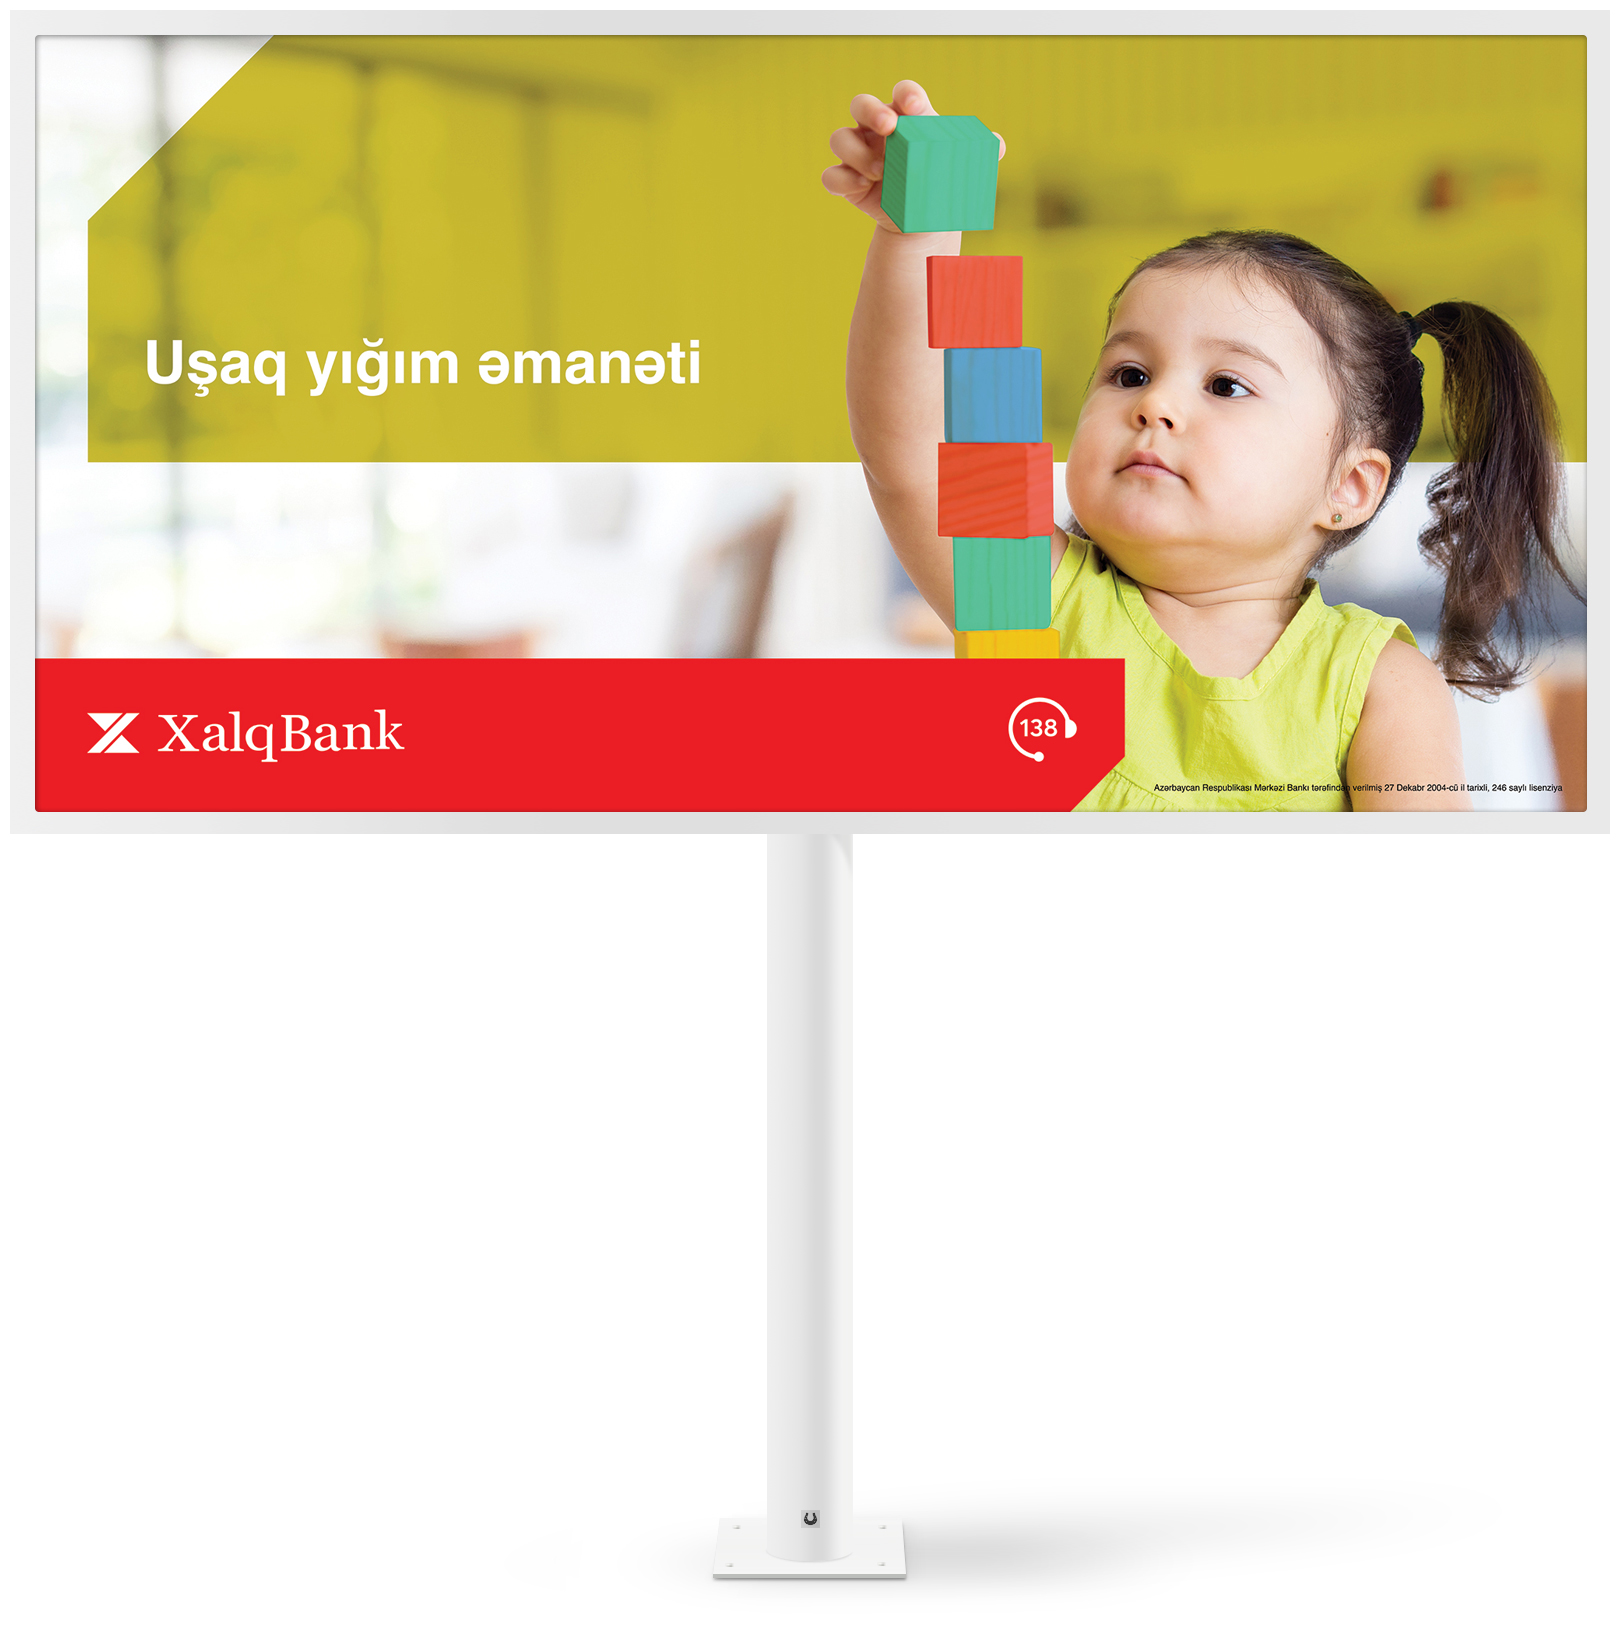 3-xalqbank_loan-billboard.jpg